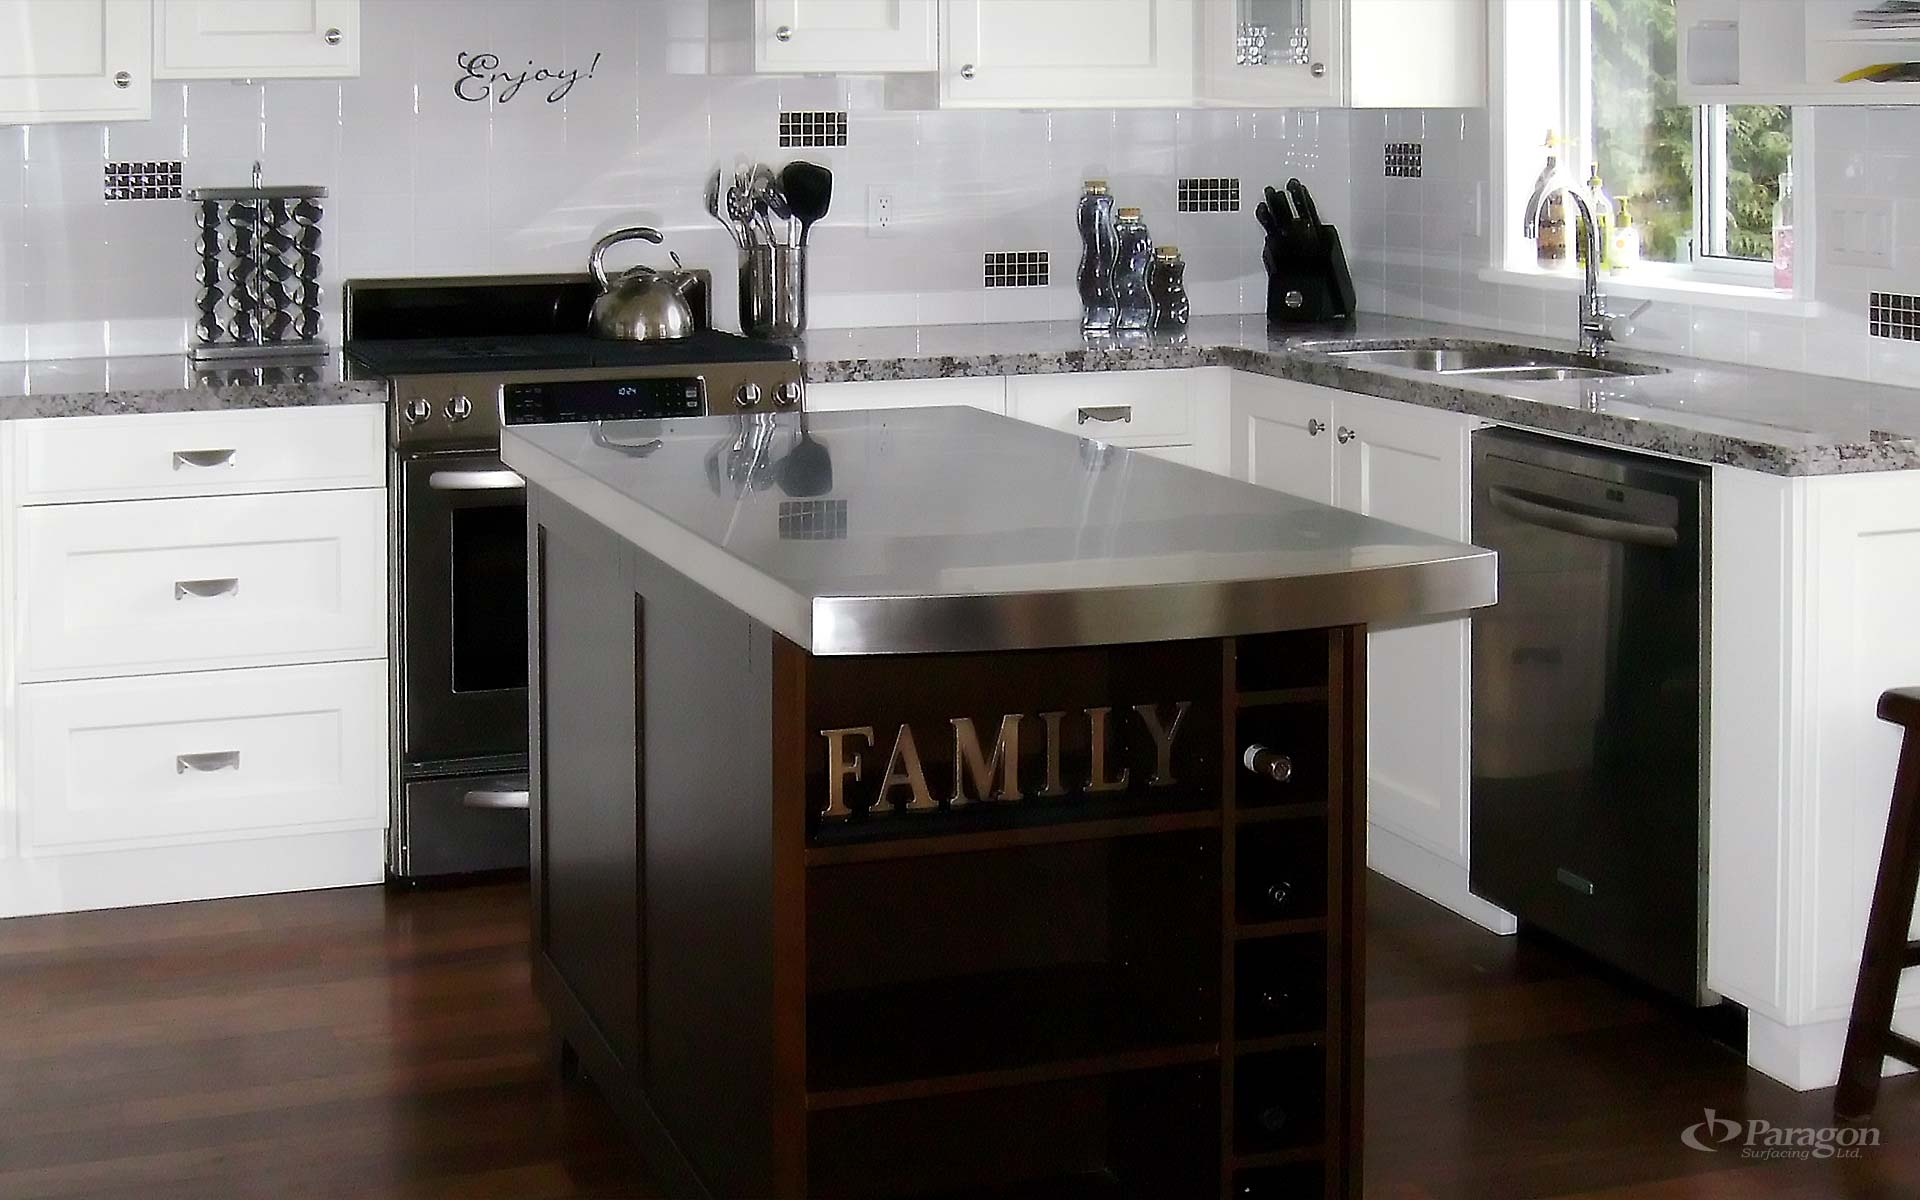 Custom Stainless Steel Countertops Vancouver Richmond Bc Paragon Surfacing